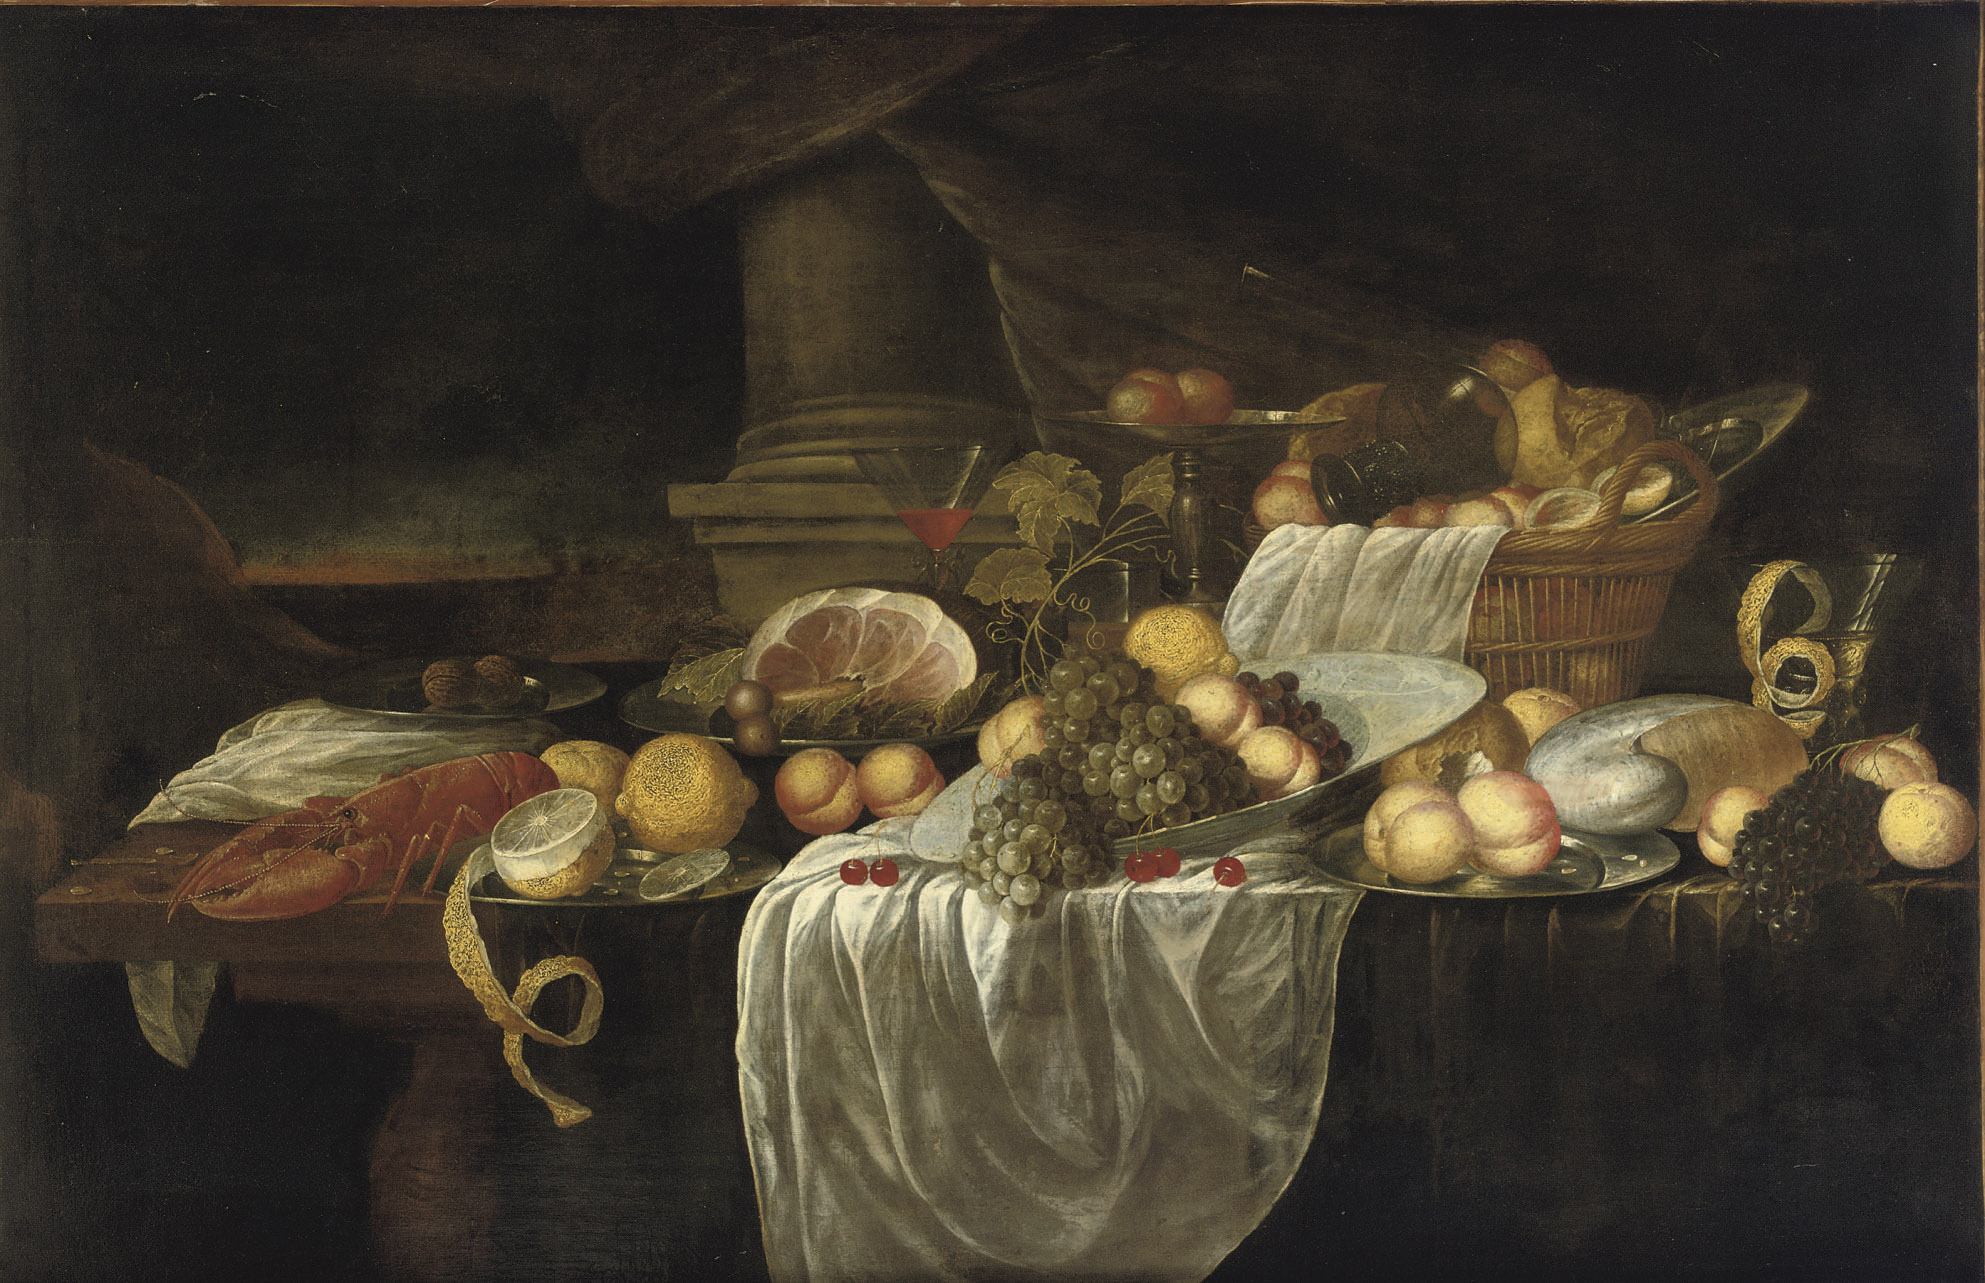 A porcelain bowl with grapes, peaches and lemons together with a wicker basket with bread, a glass, lobster, ham and various other objects all on a partially draped table